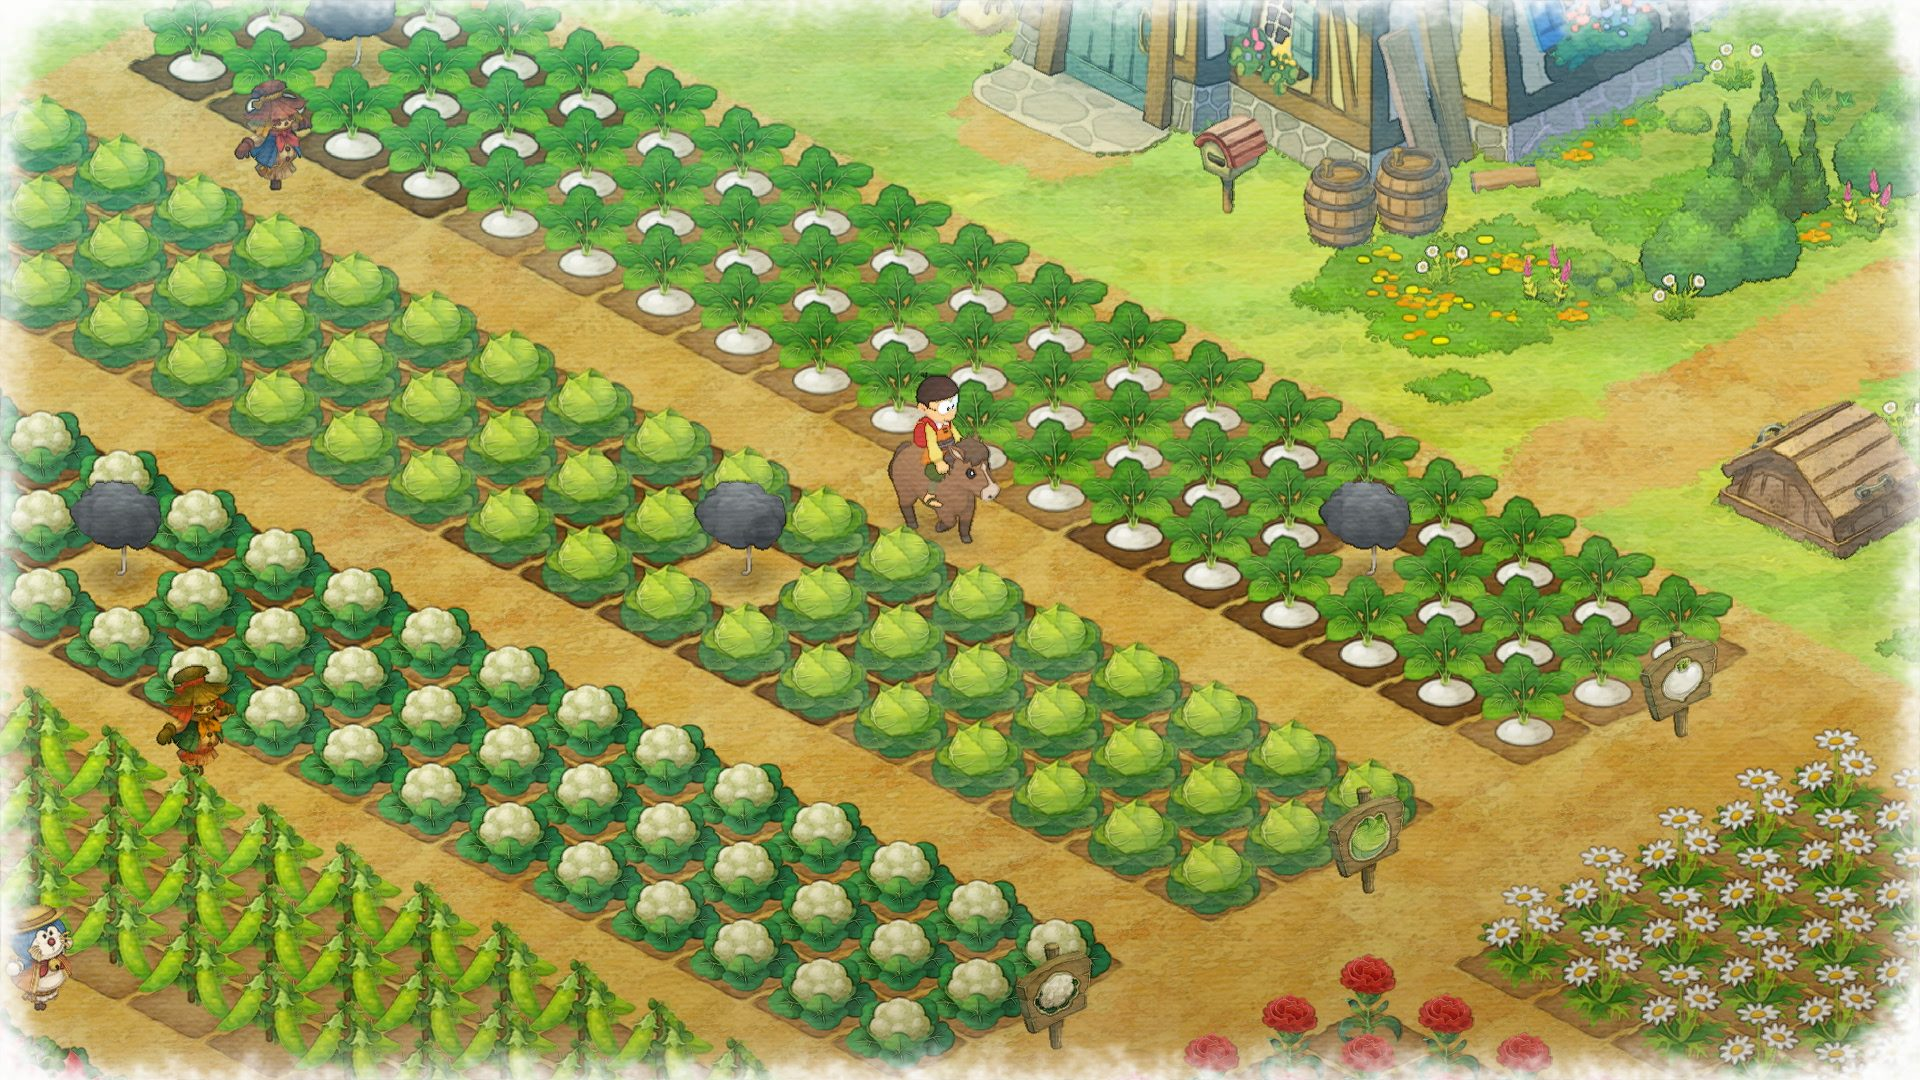 Doraemon_developed farm 2